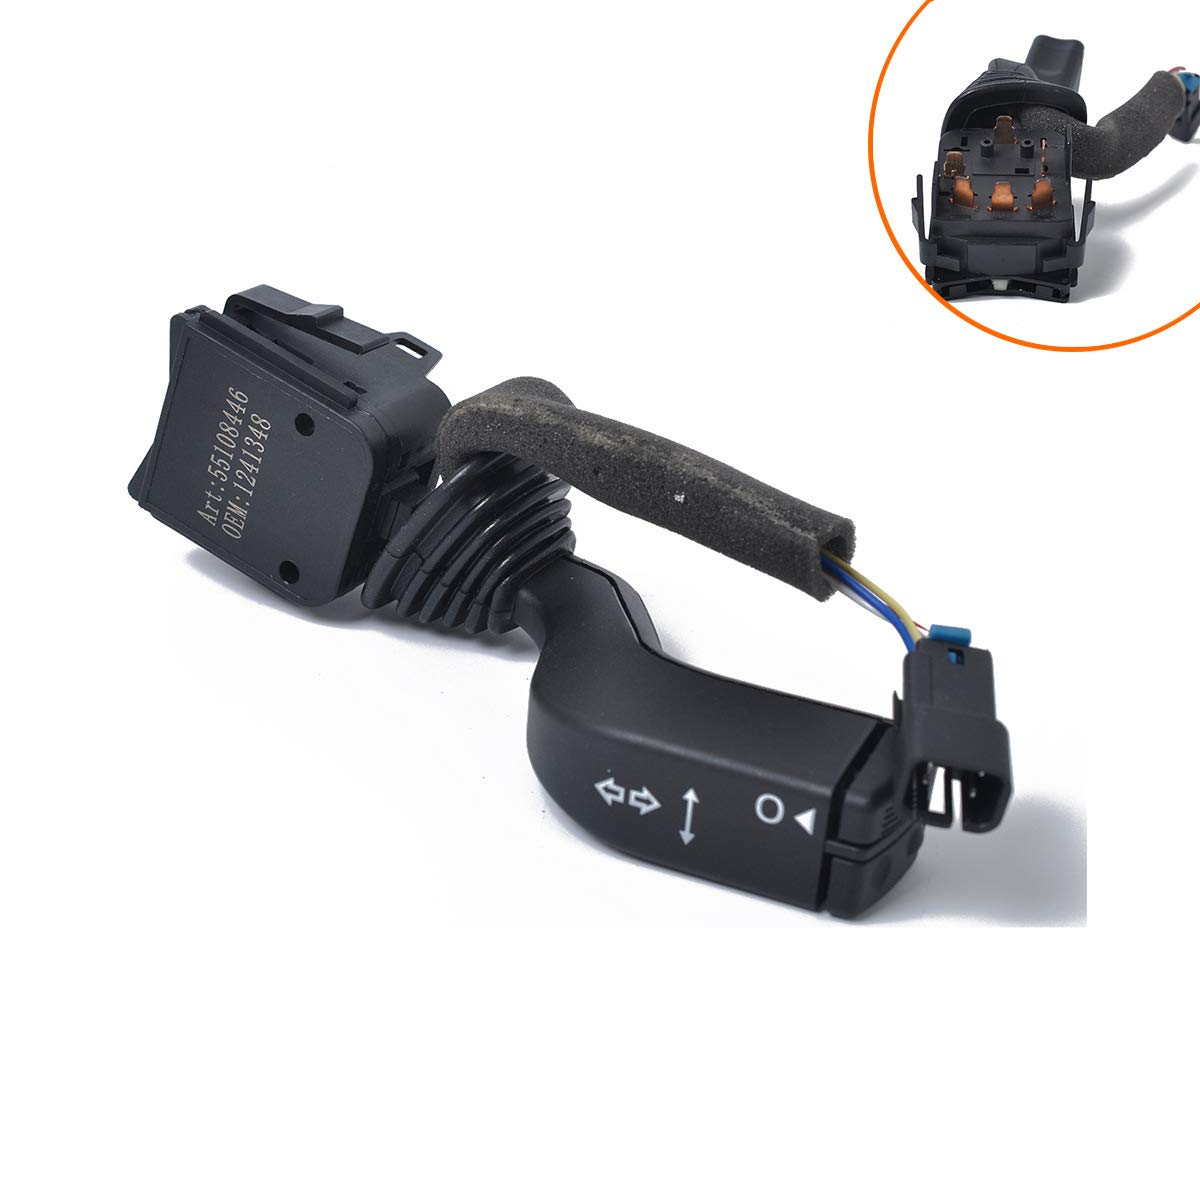 Cruise Control Wiper Replaces Part # 2330814 Washers Vauxhall Hazard Switch 26100985 Multi-Function Combination Switch 26036312 for Opel Turn Signal